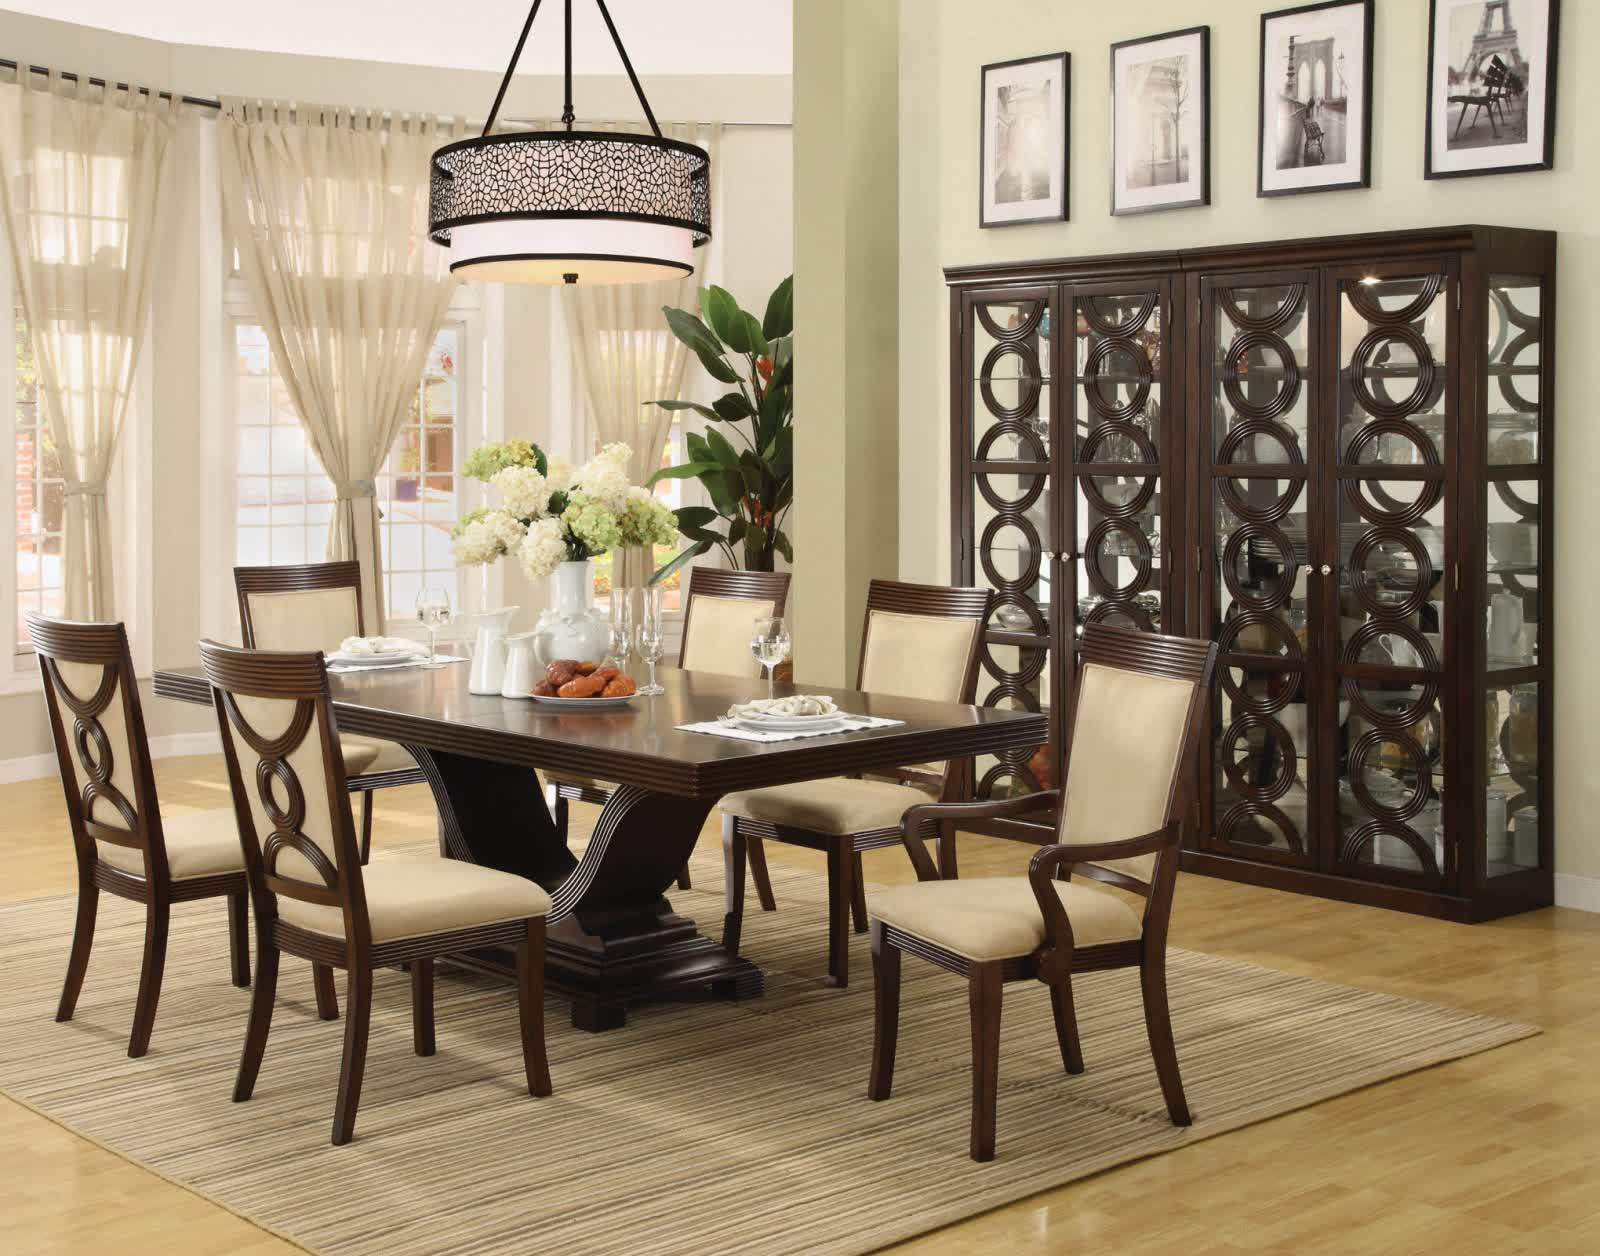 Dining Room Table Decor Custom Attractive Centerpieces For Dining Room Tables To Create Decorating Design